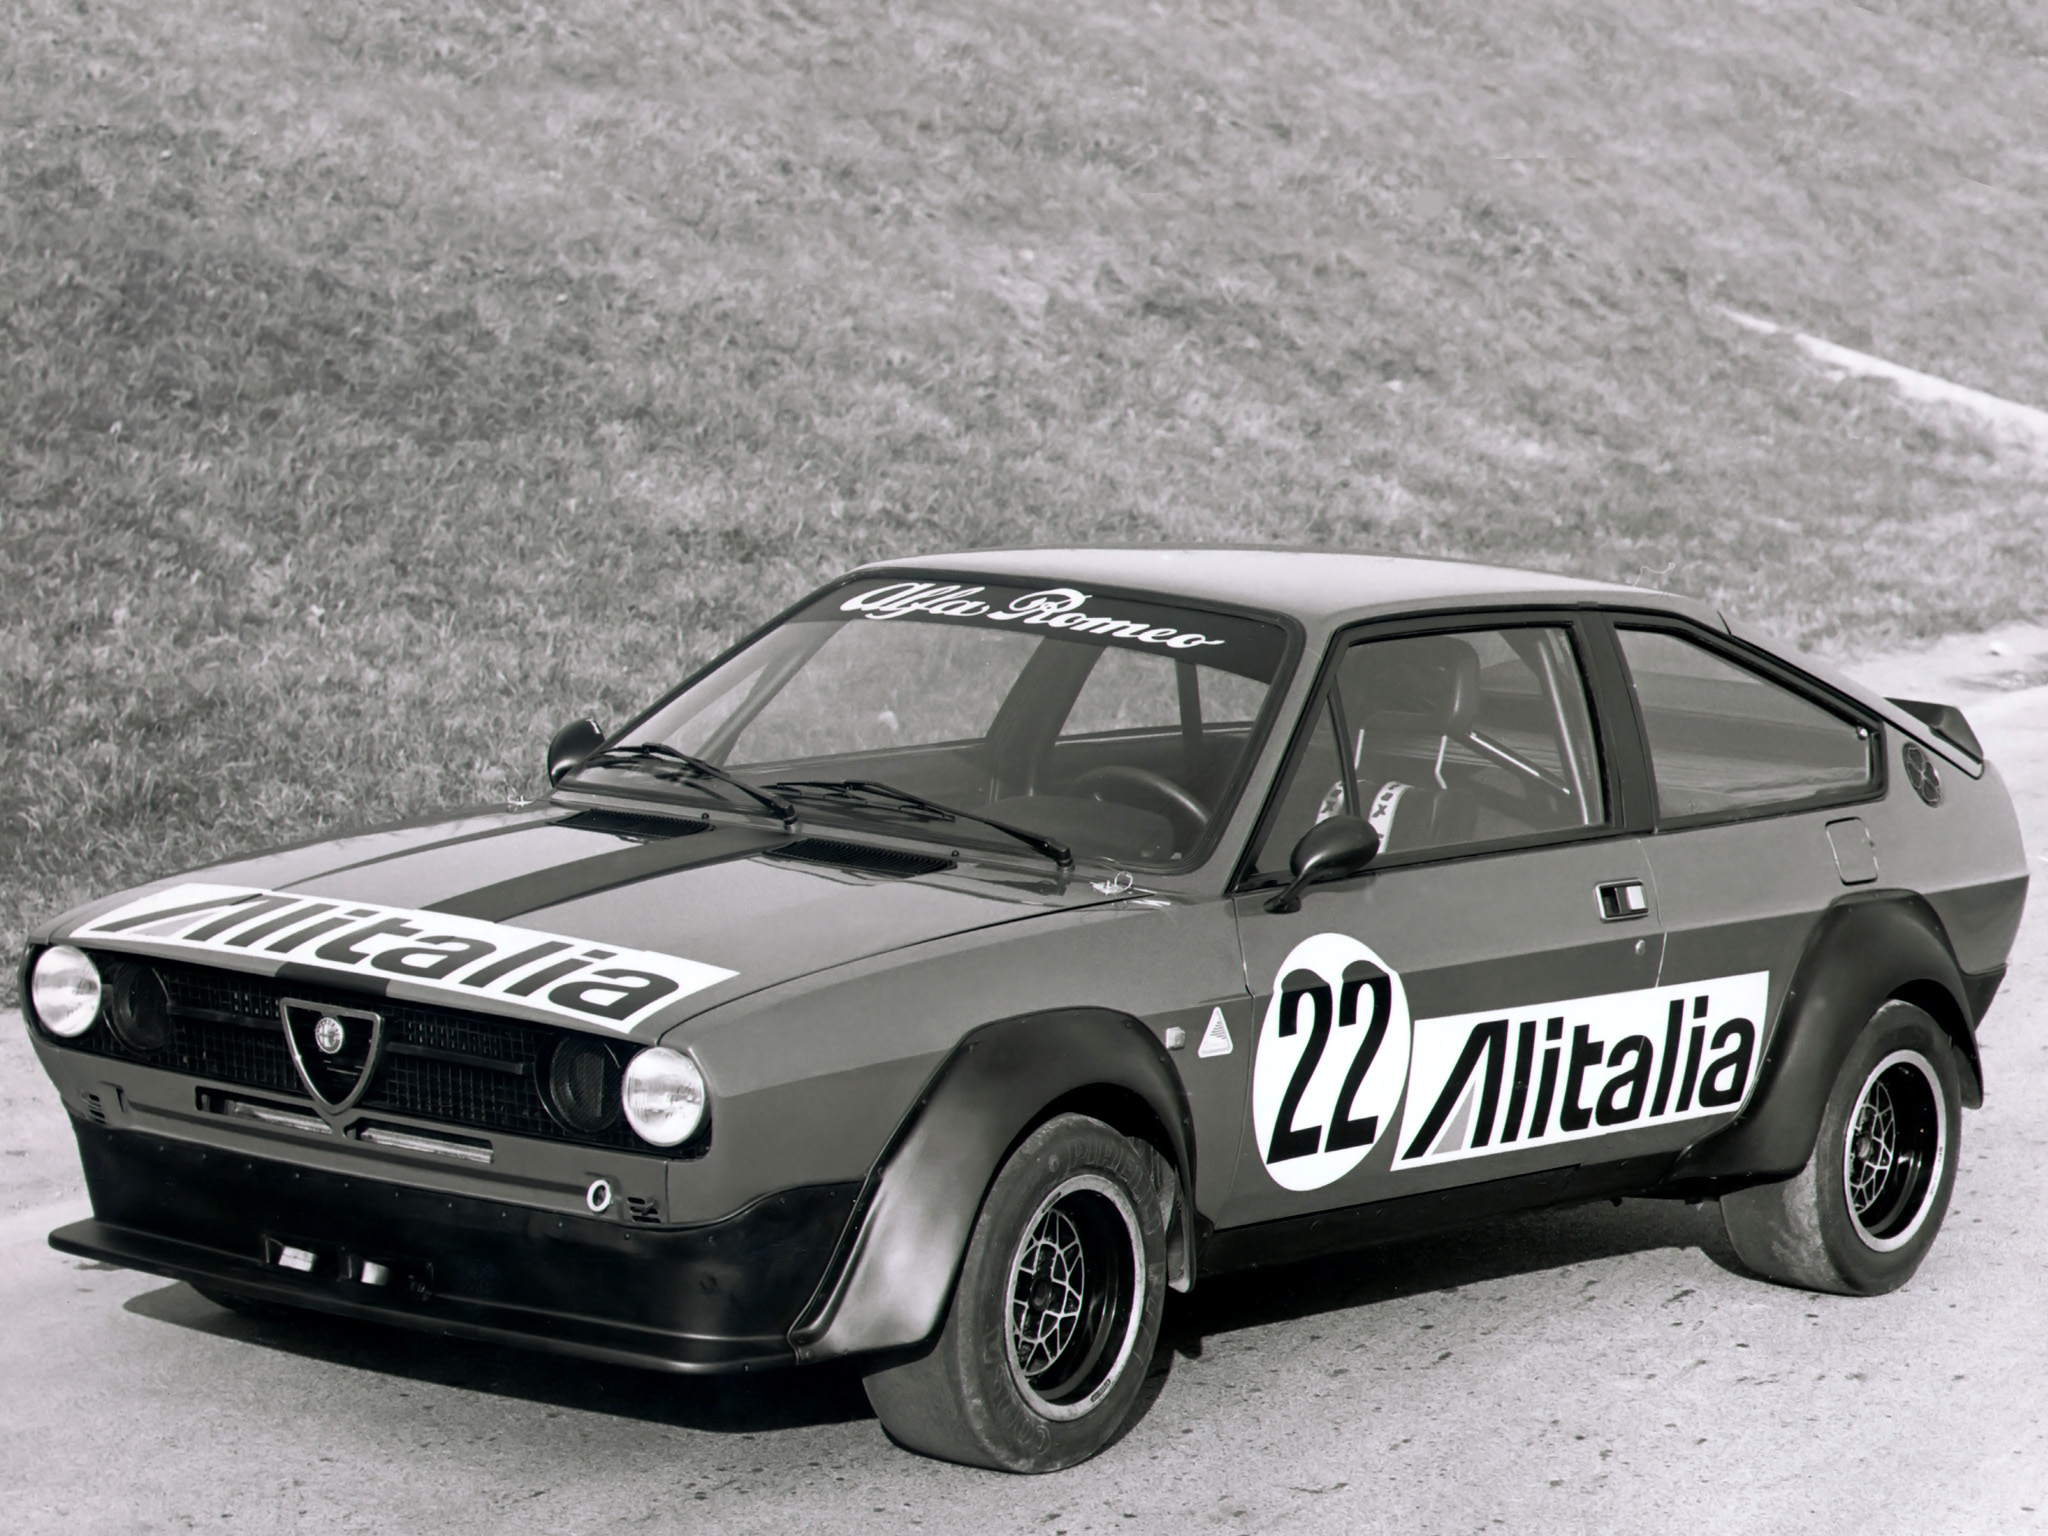 The Alfasud looked its best in sporting Sprint guise